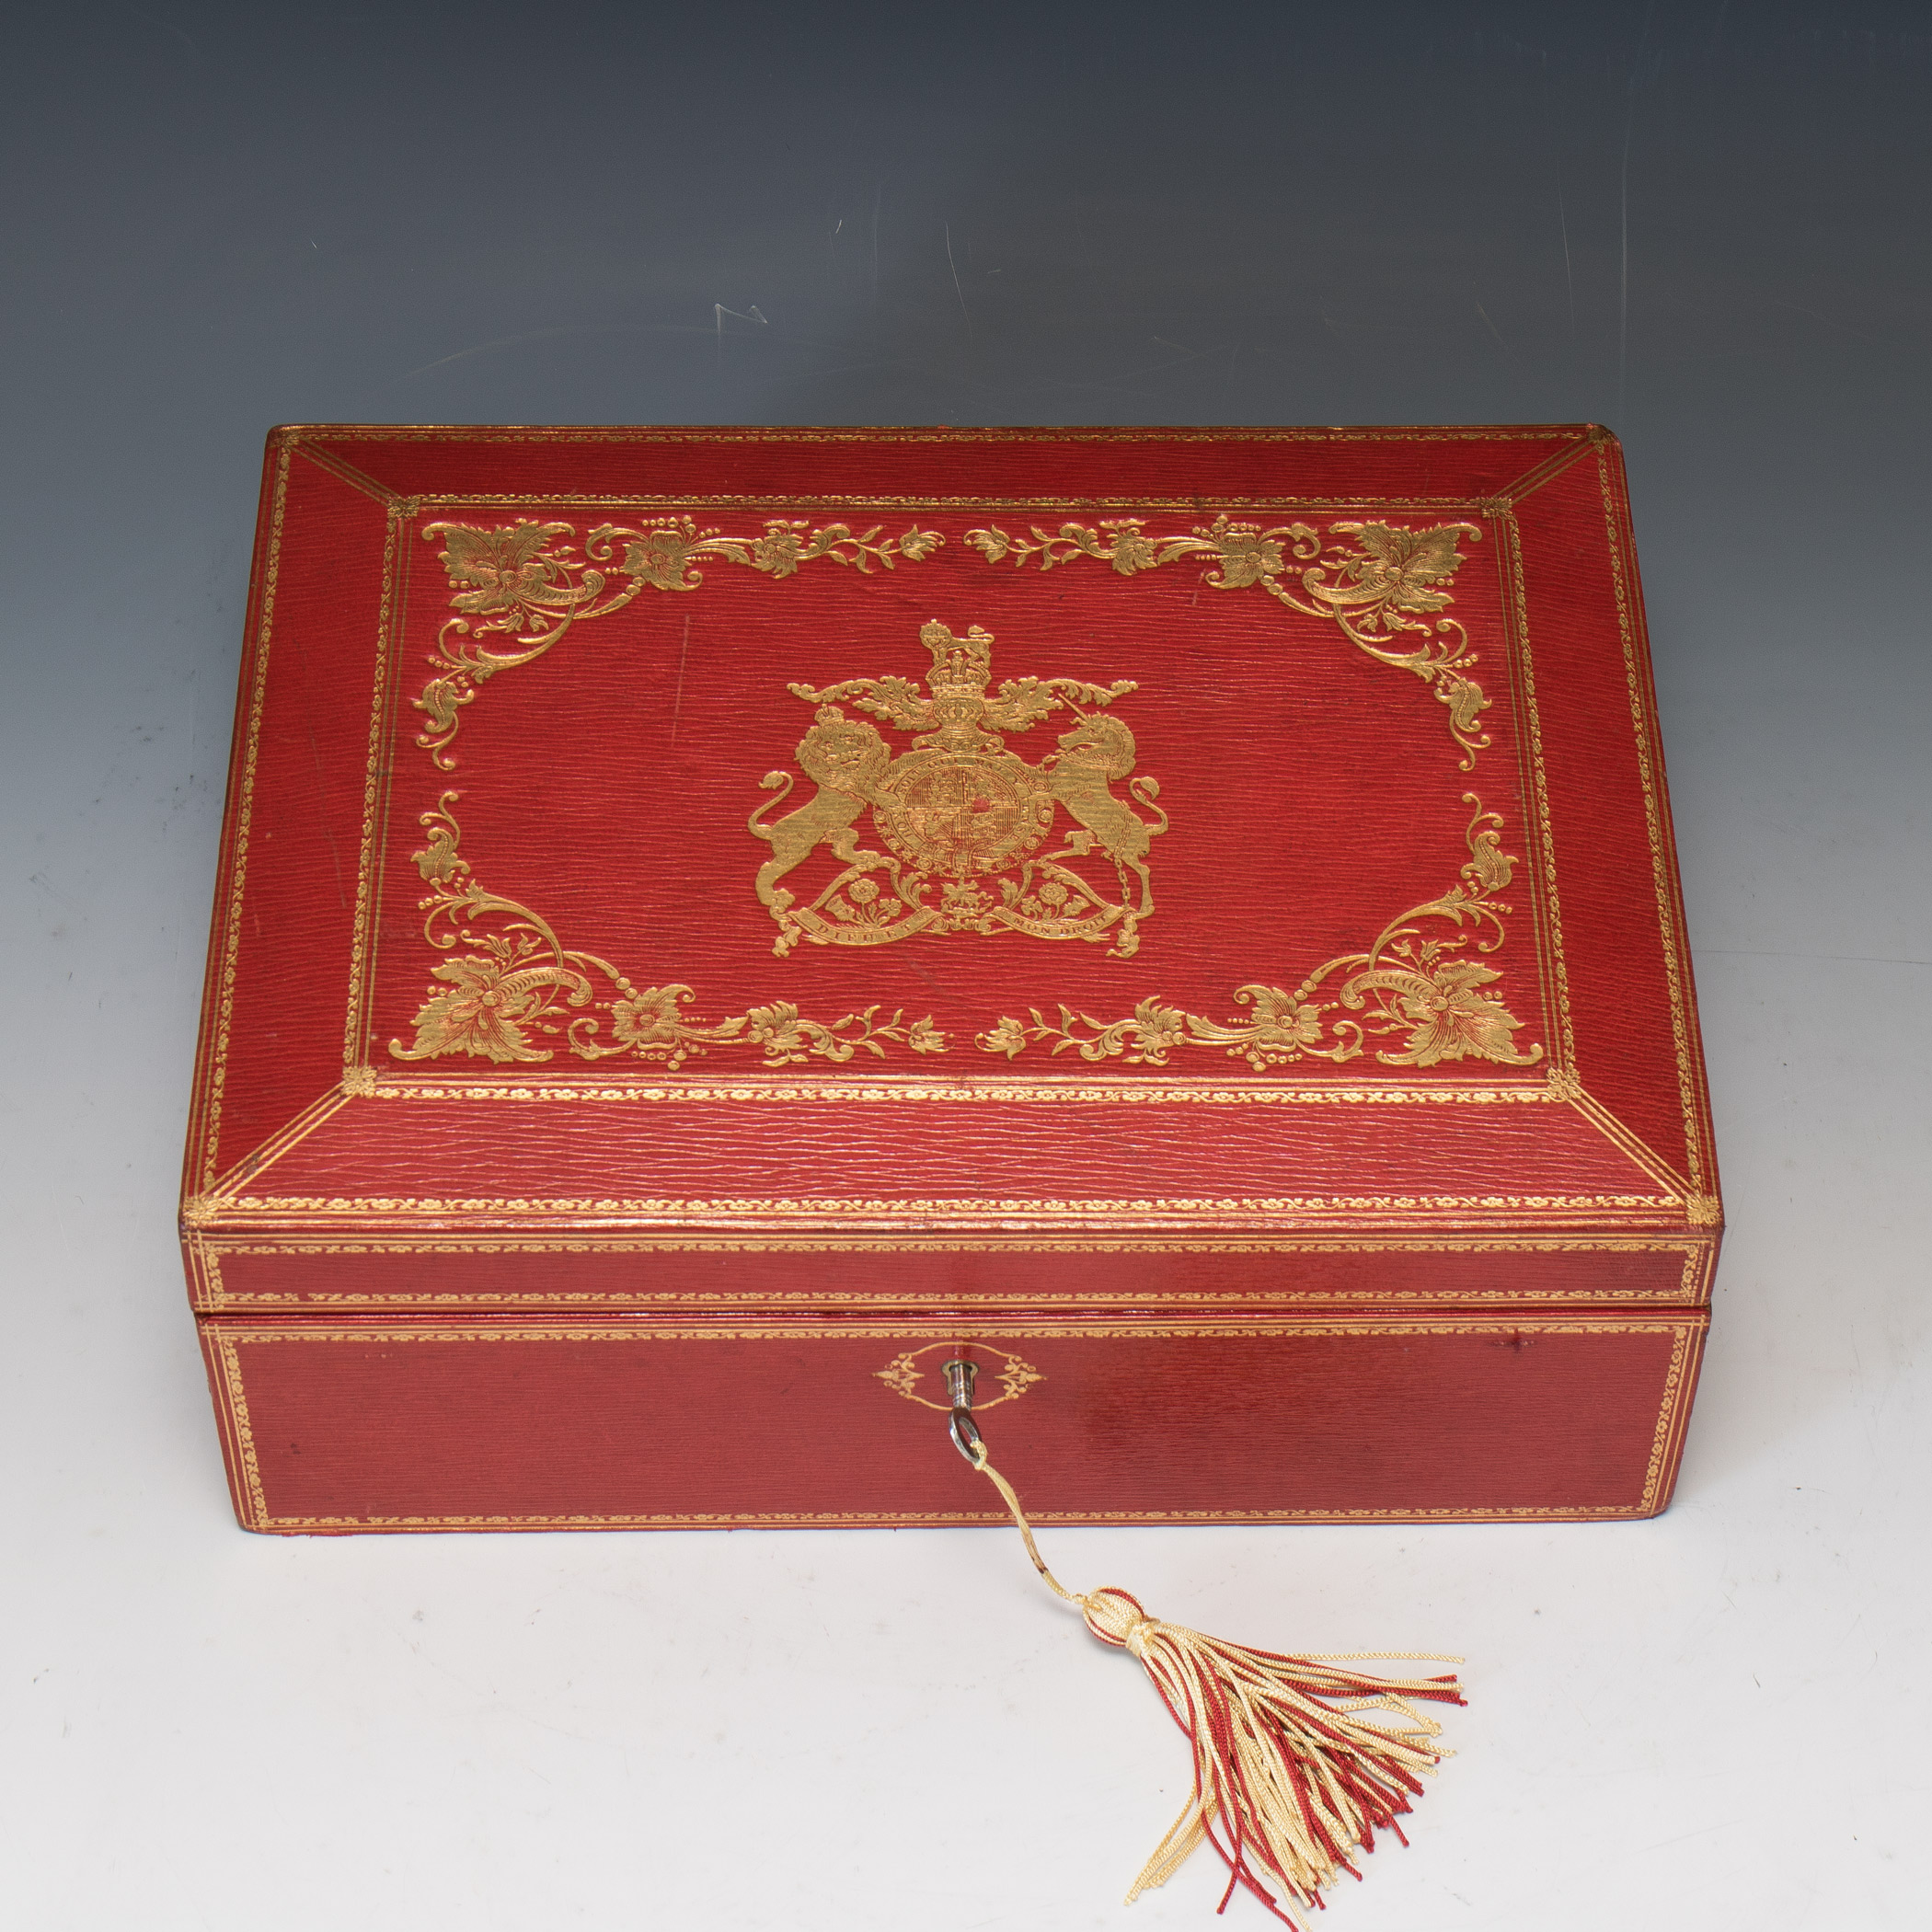 A George V Red Leather Box With Royal Warrant On Vellum